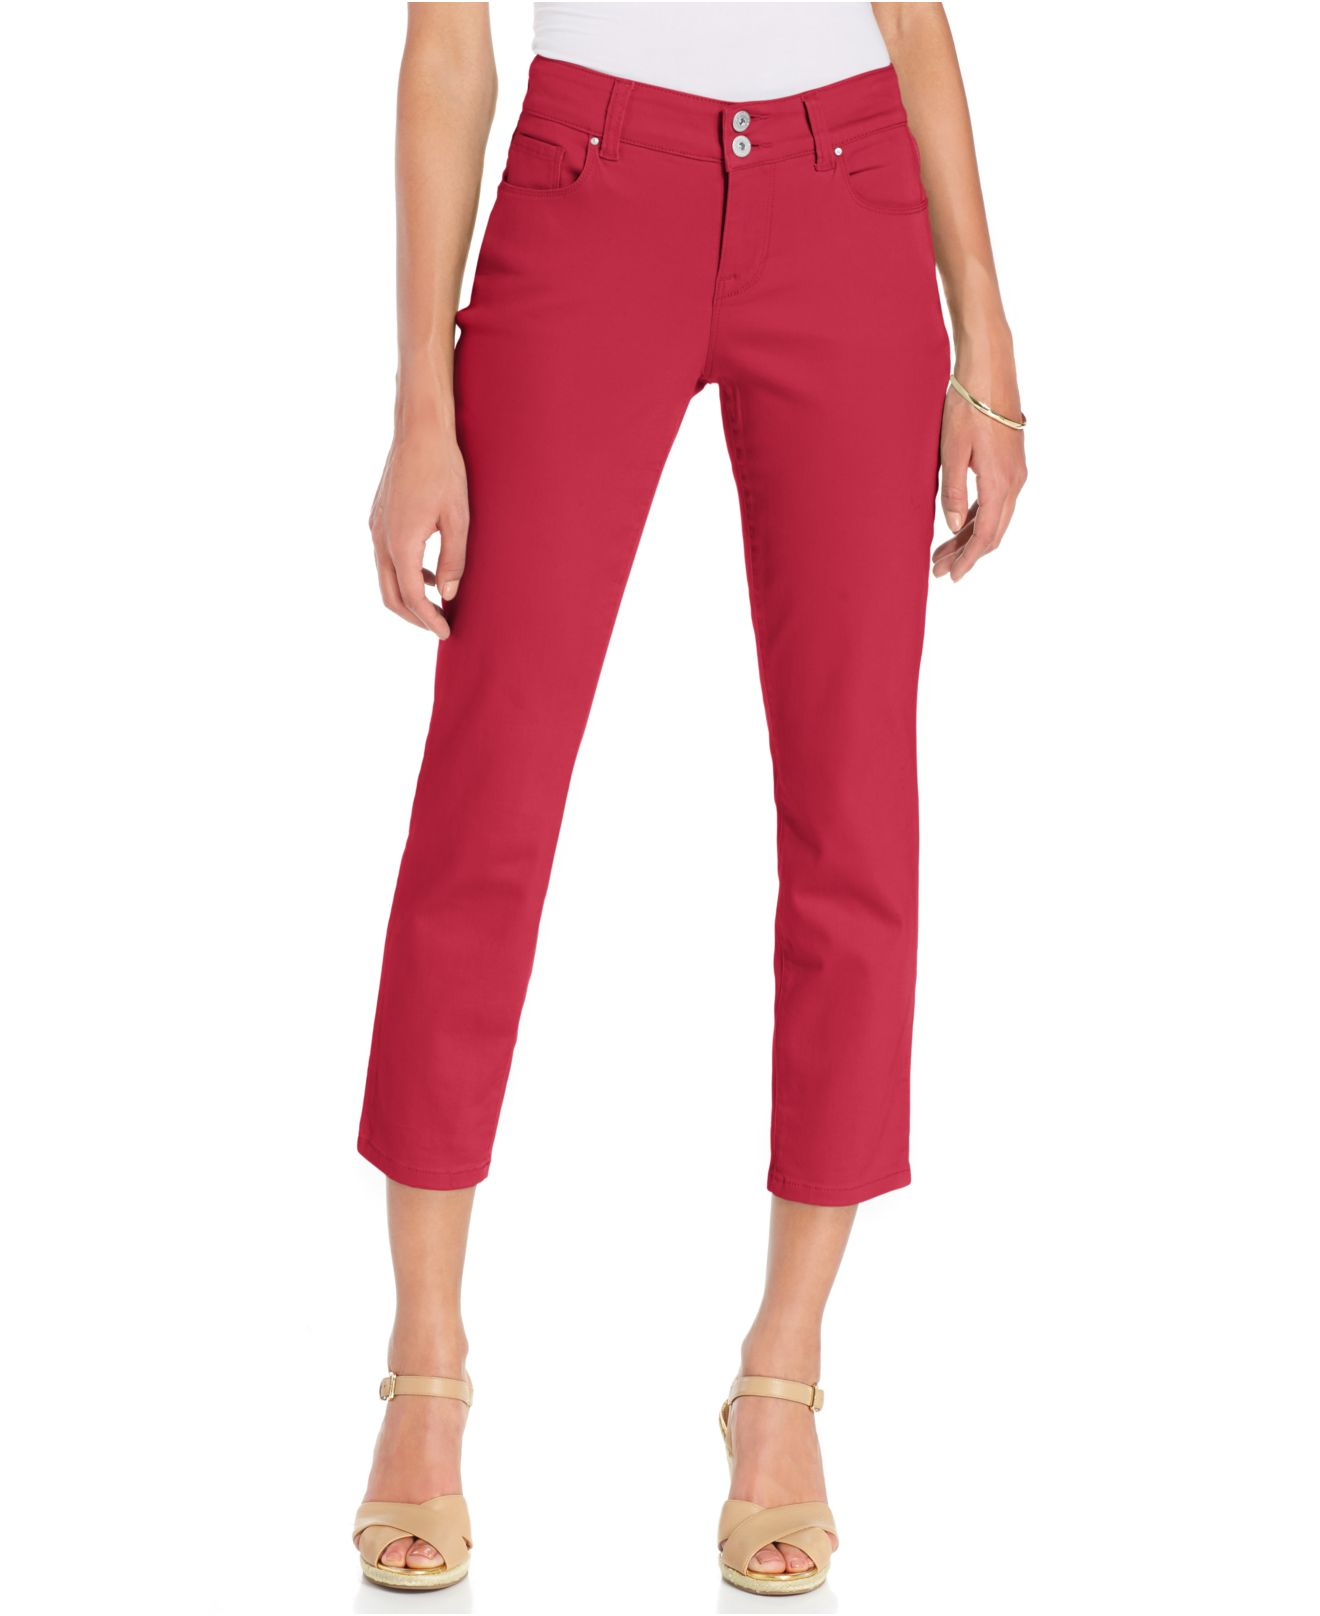 Style & co. Curvy-Fit Capri Pants in Red | Lyst